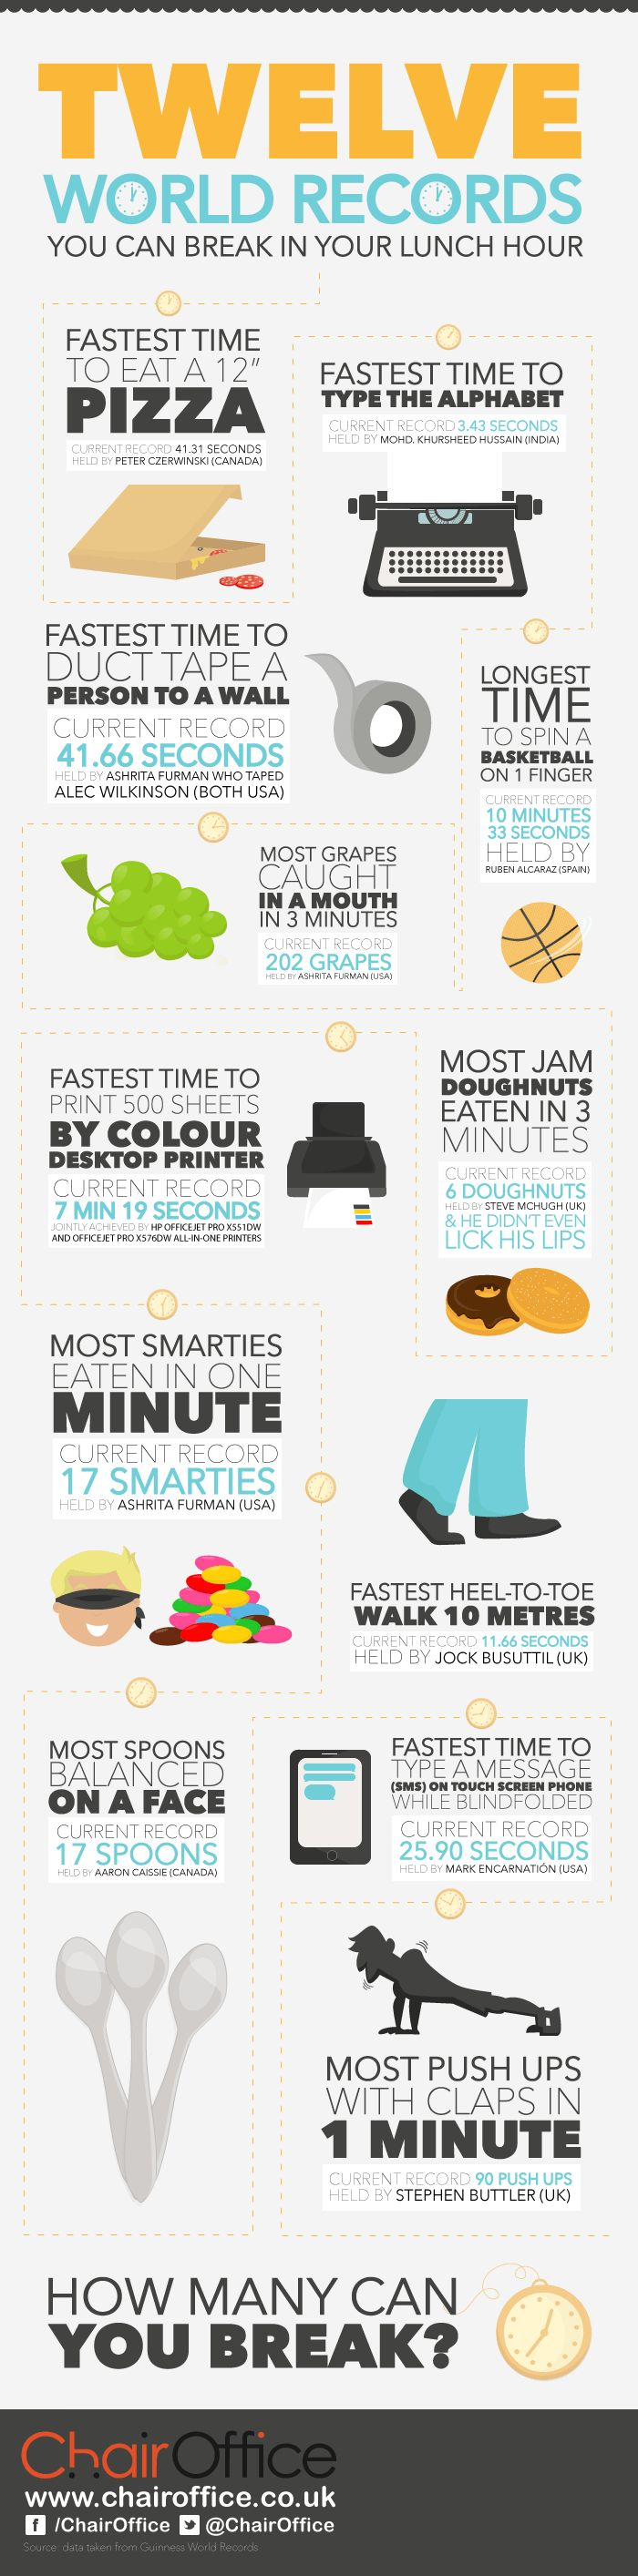 12 World Records You Could Easily Break (infographic)